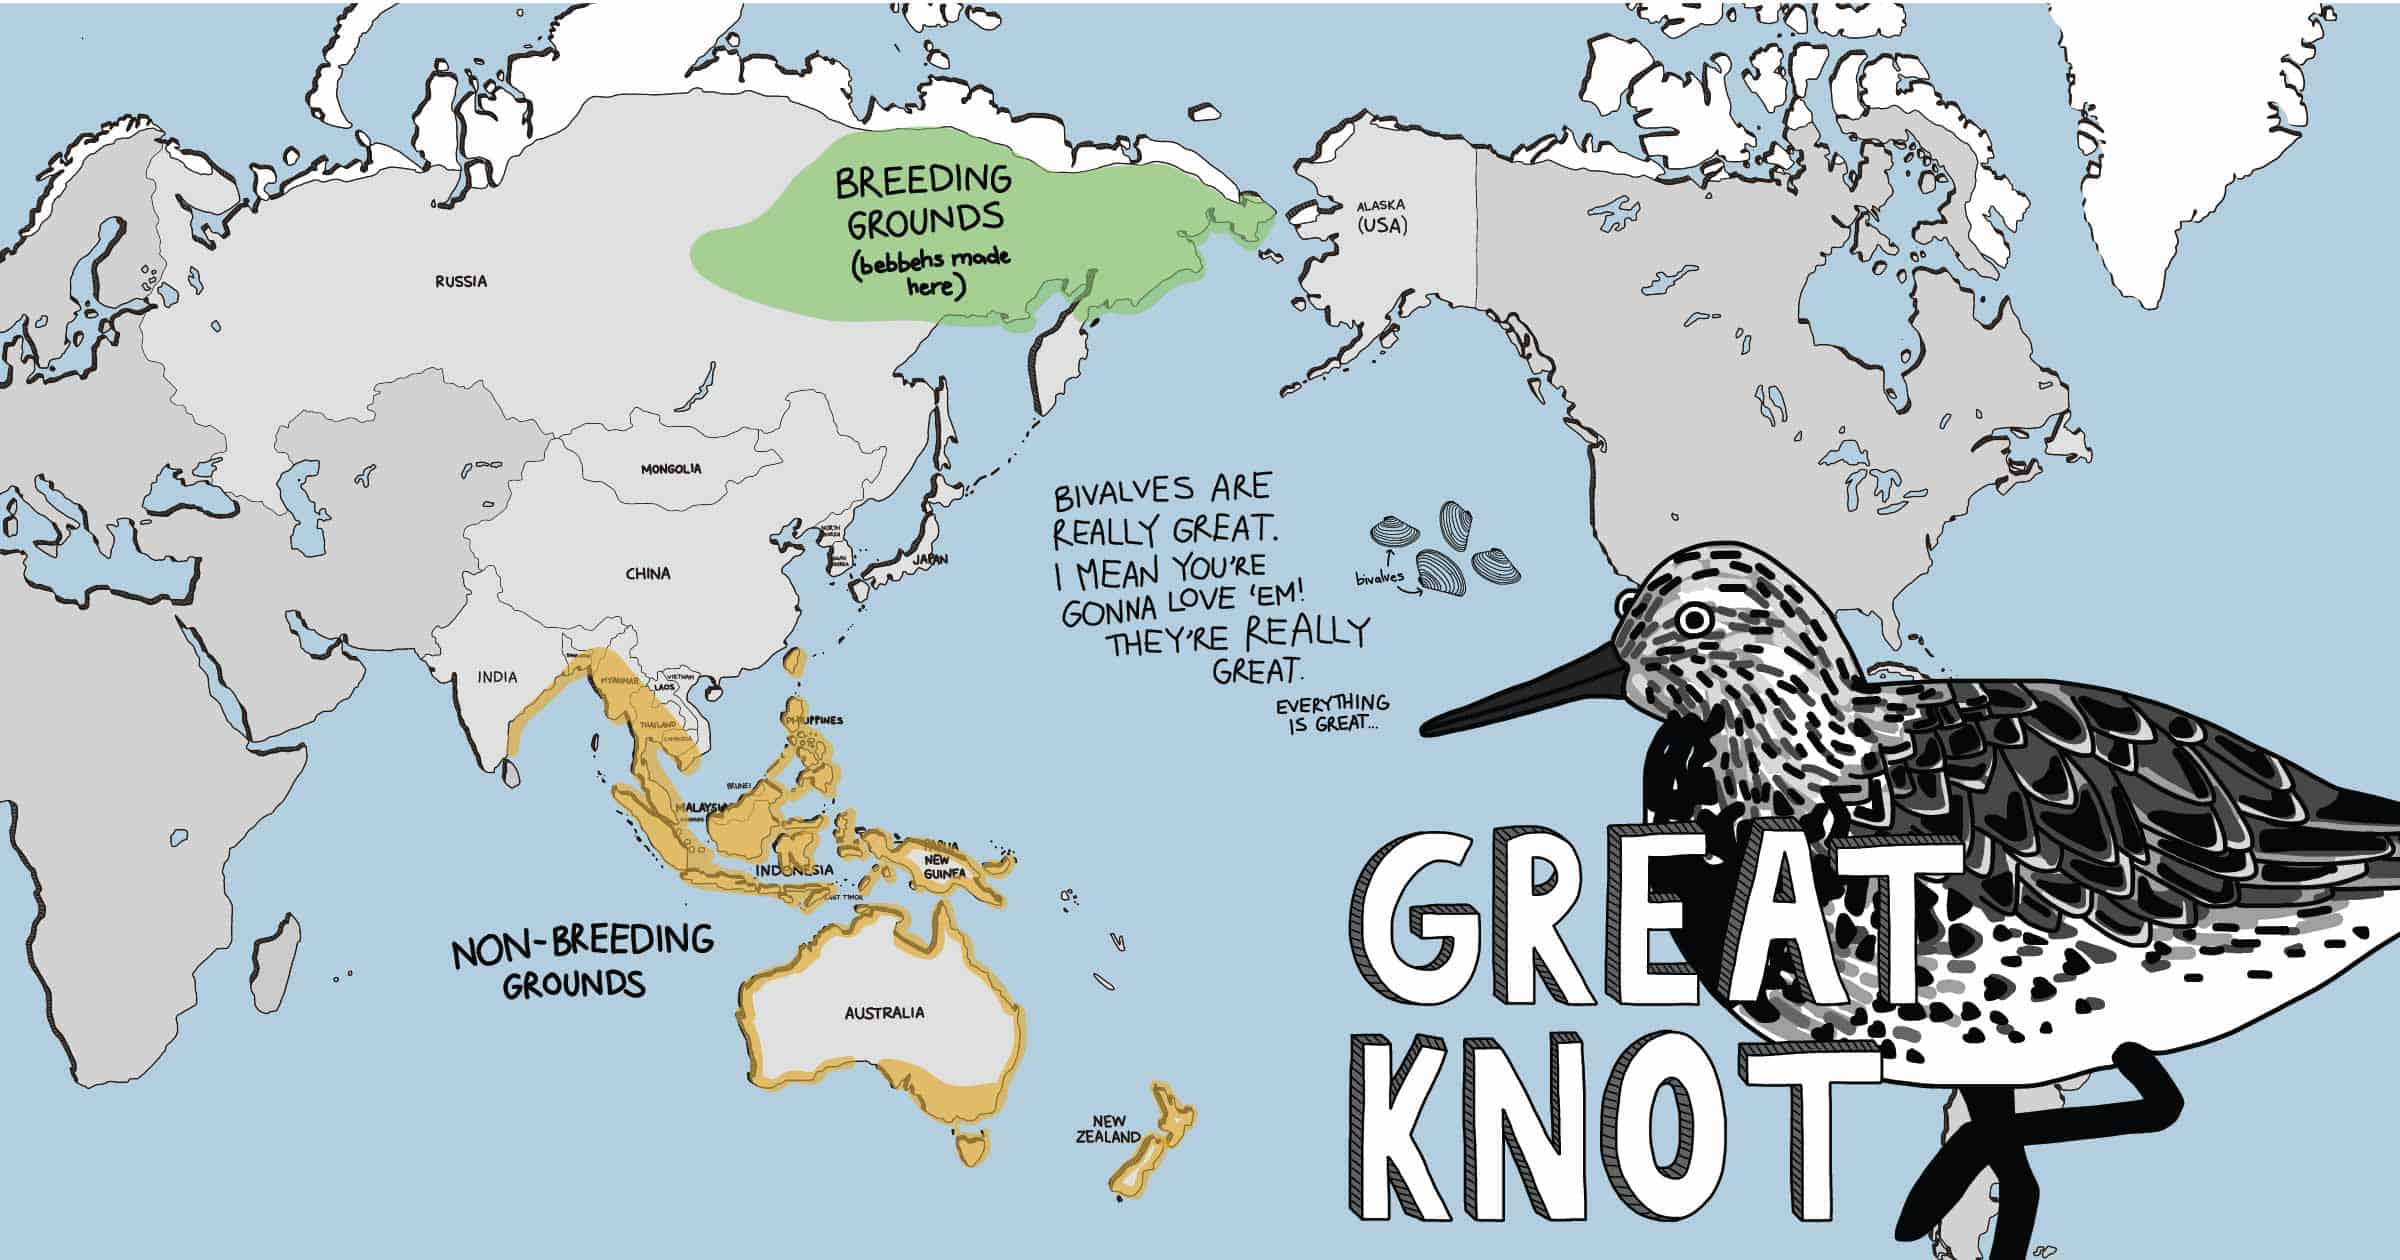 Cartoon world map showing distribution of the Great Knot